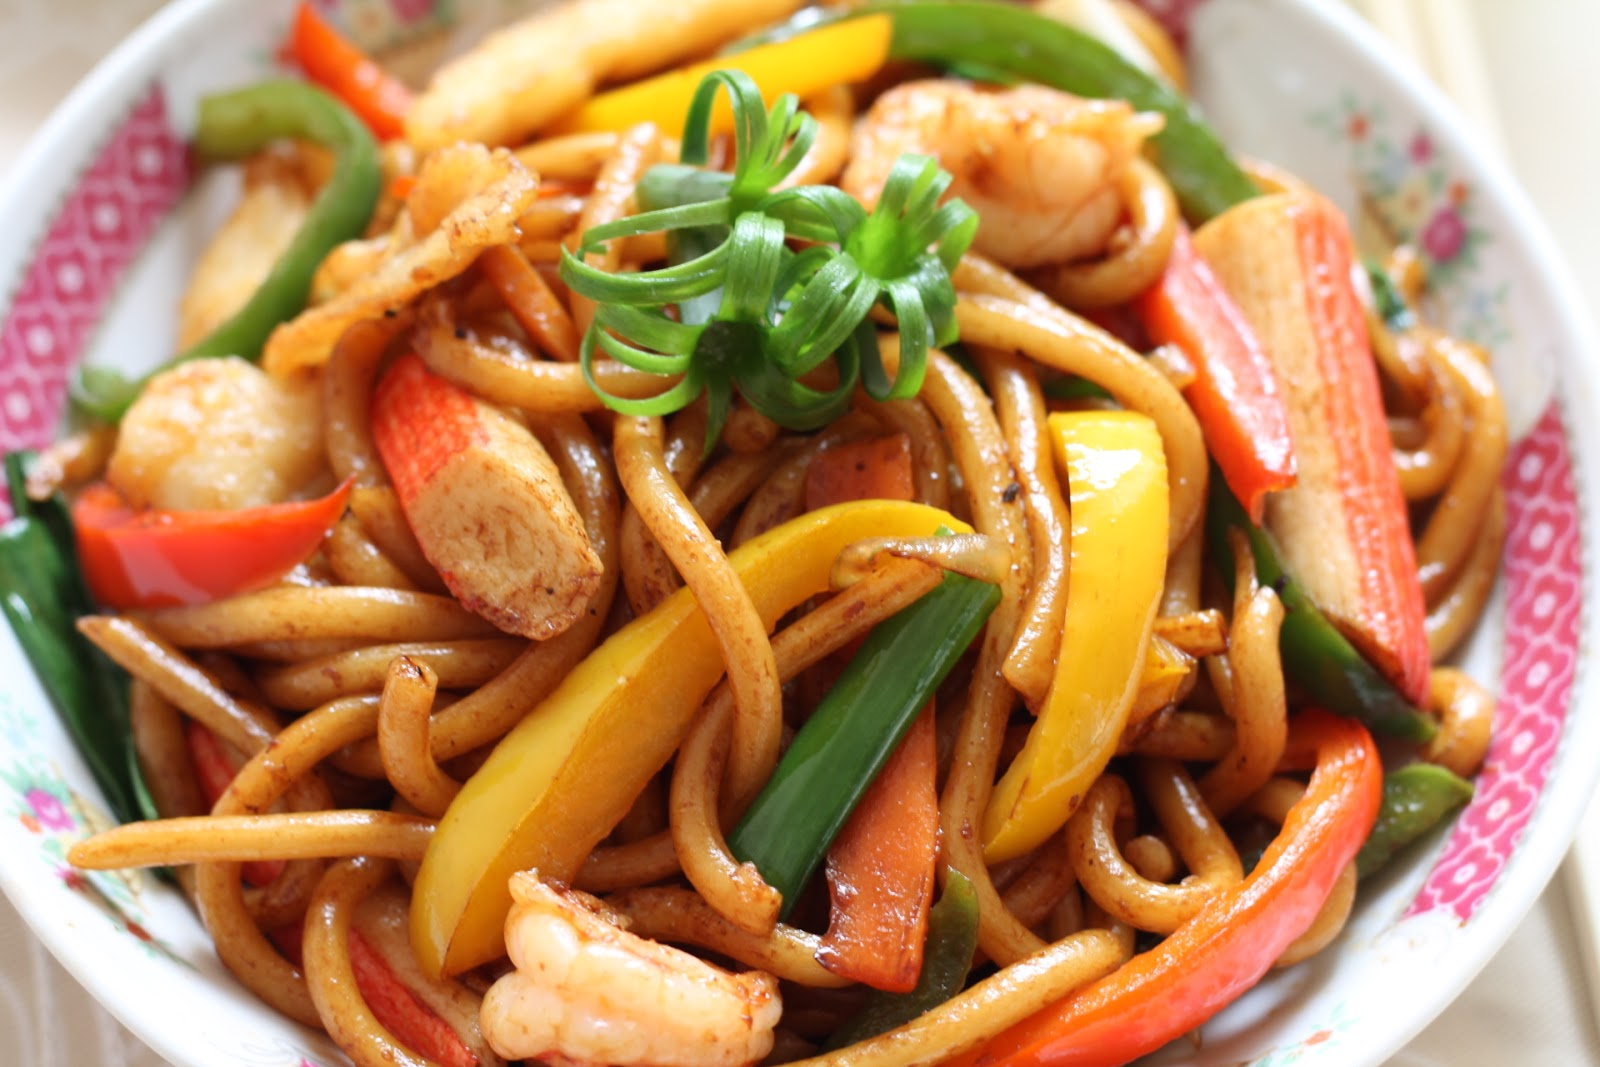 My Bare Cupboard Stir Fried Udon Noodles With Seafood In